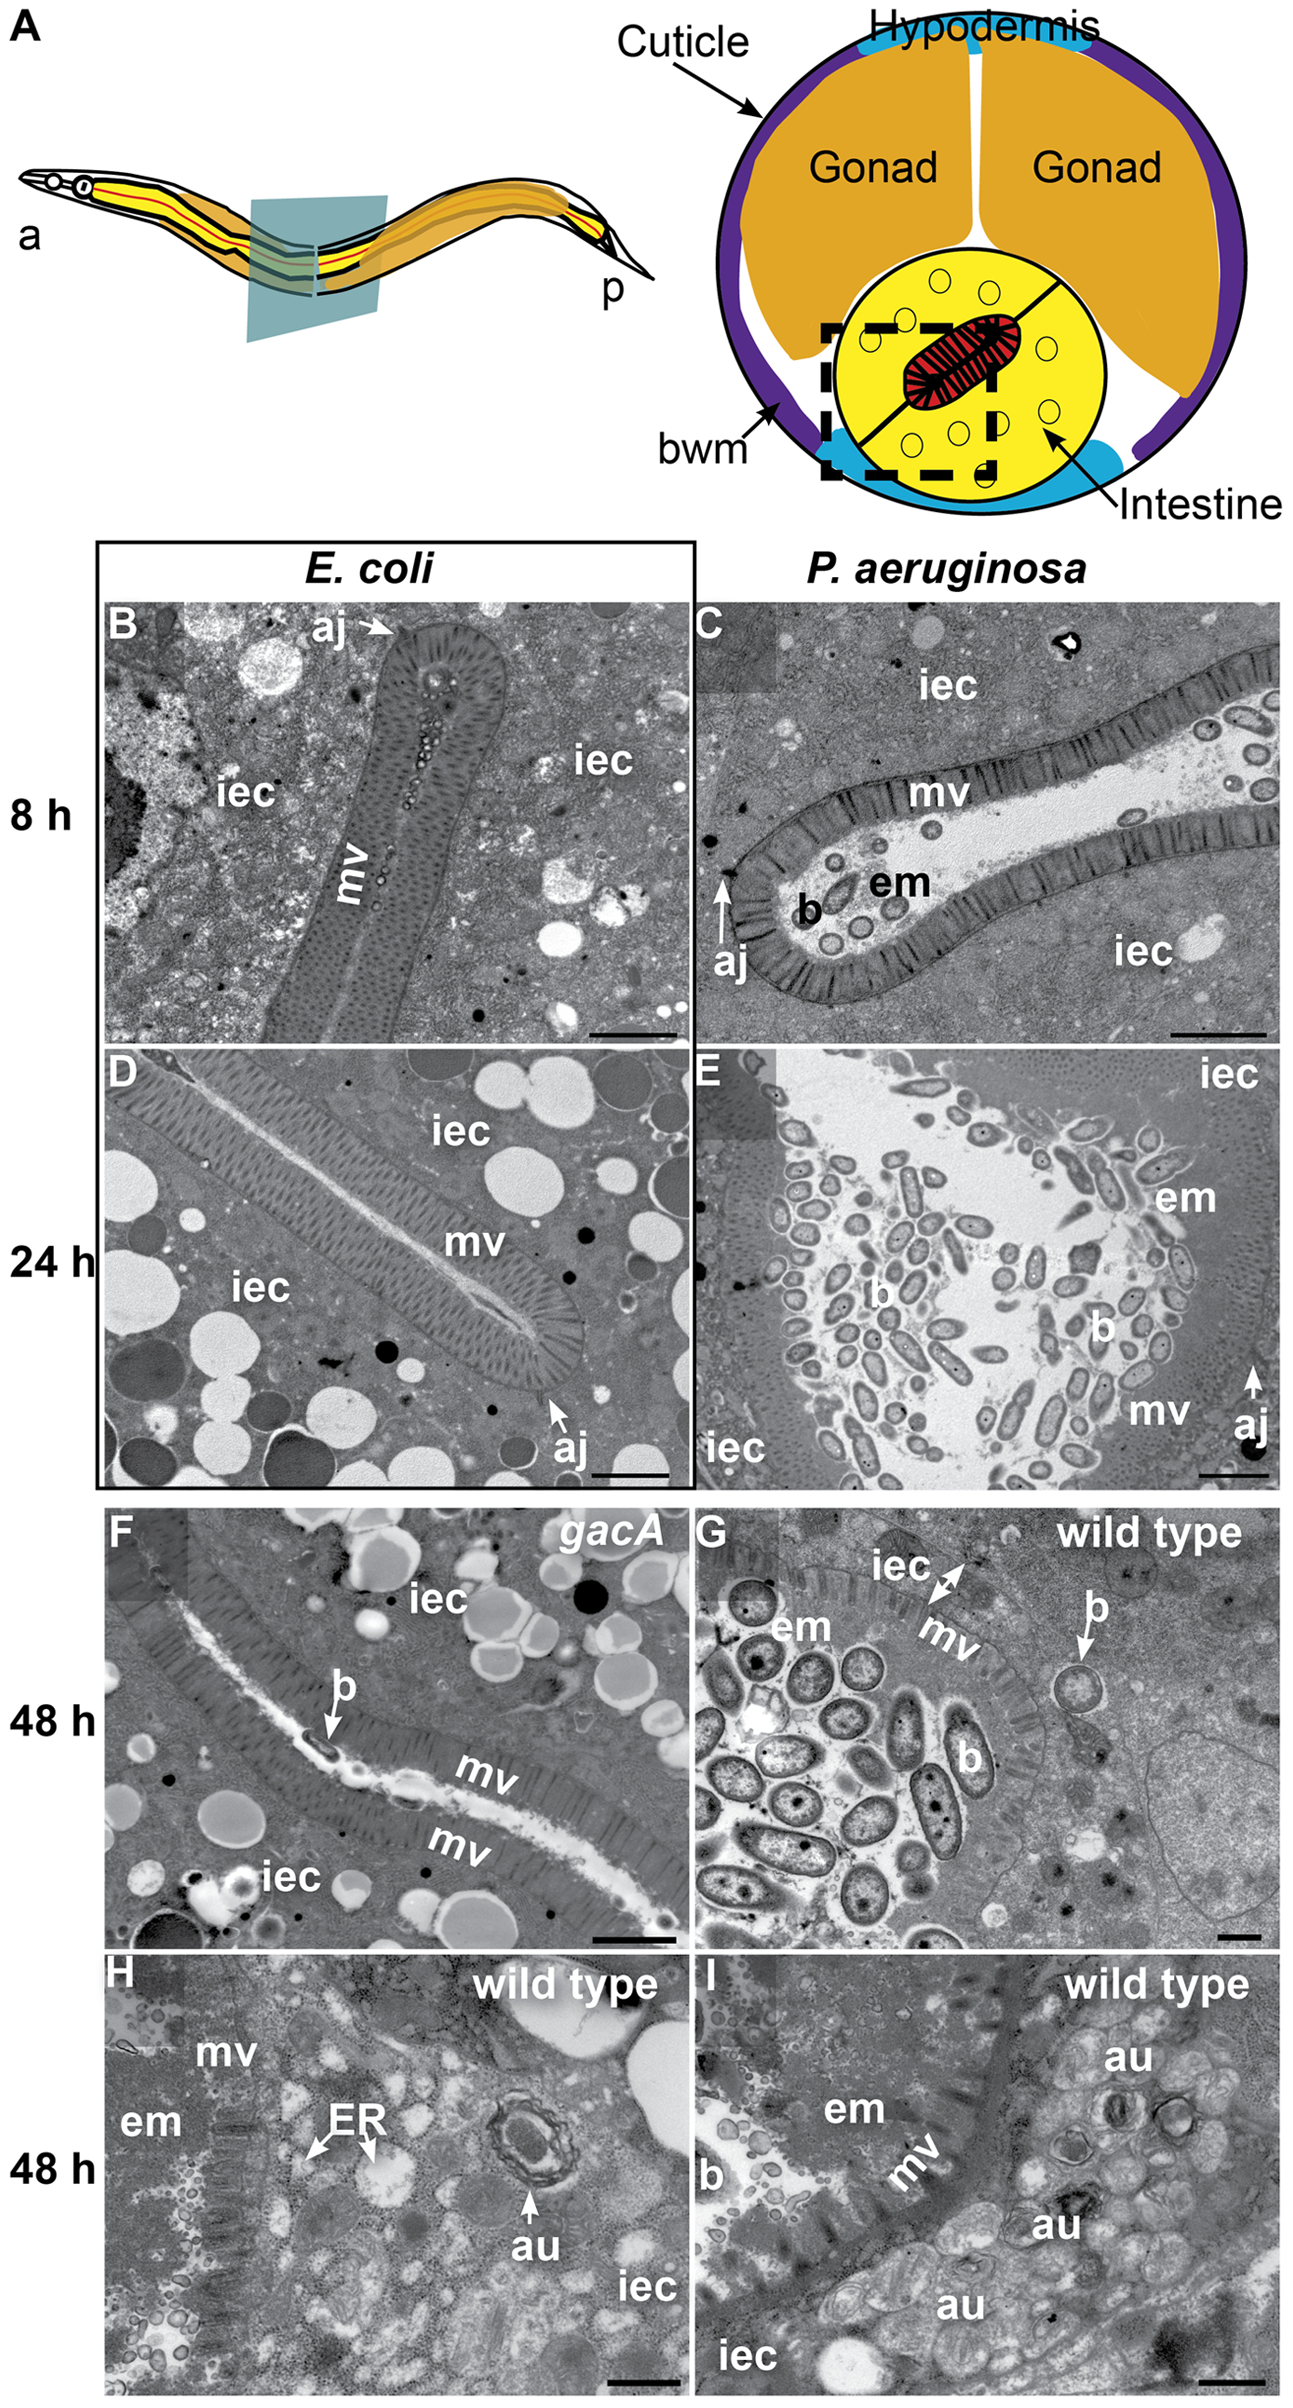 <i>P. aeruginosa</i> causes intestinal distention, extracellular material accumulation, intracellular invasion, and abnormal autophagy.